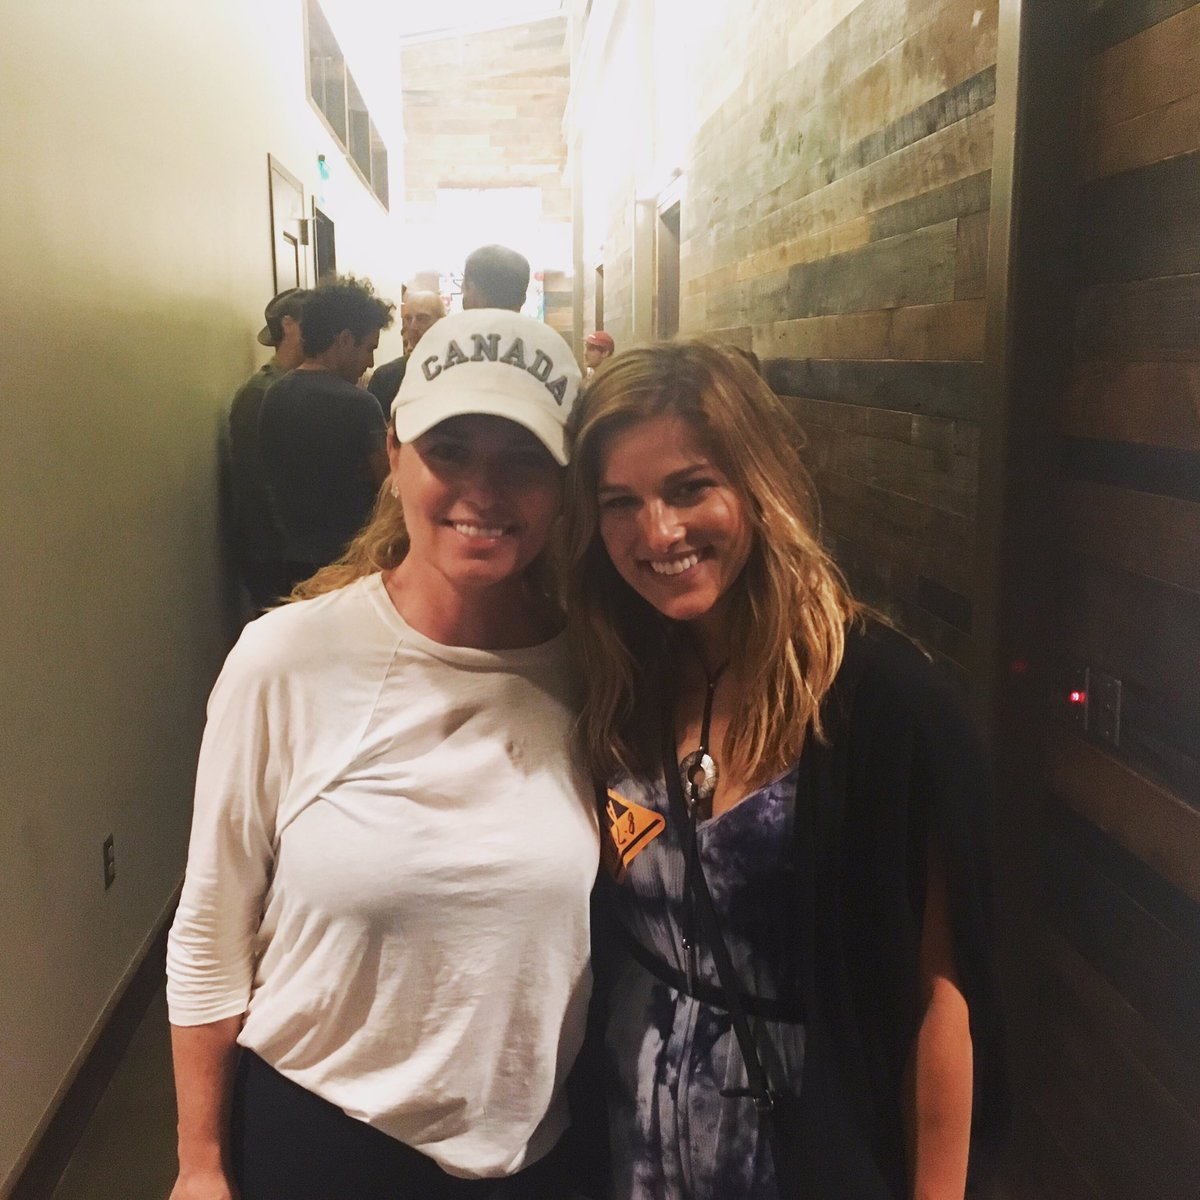 Cassadee pope on twitter thanks so much for the pic shaniatwain cassadee pope on twitter thanks so much for the pic shaniatwain it meant the world to meet you m4hsunfo